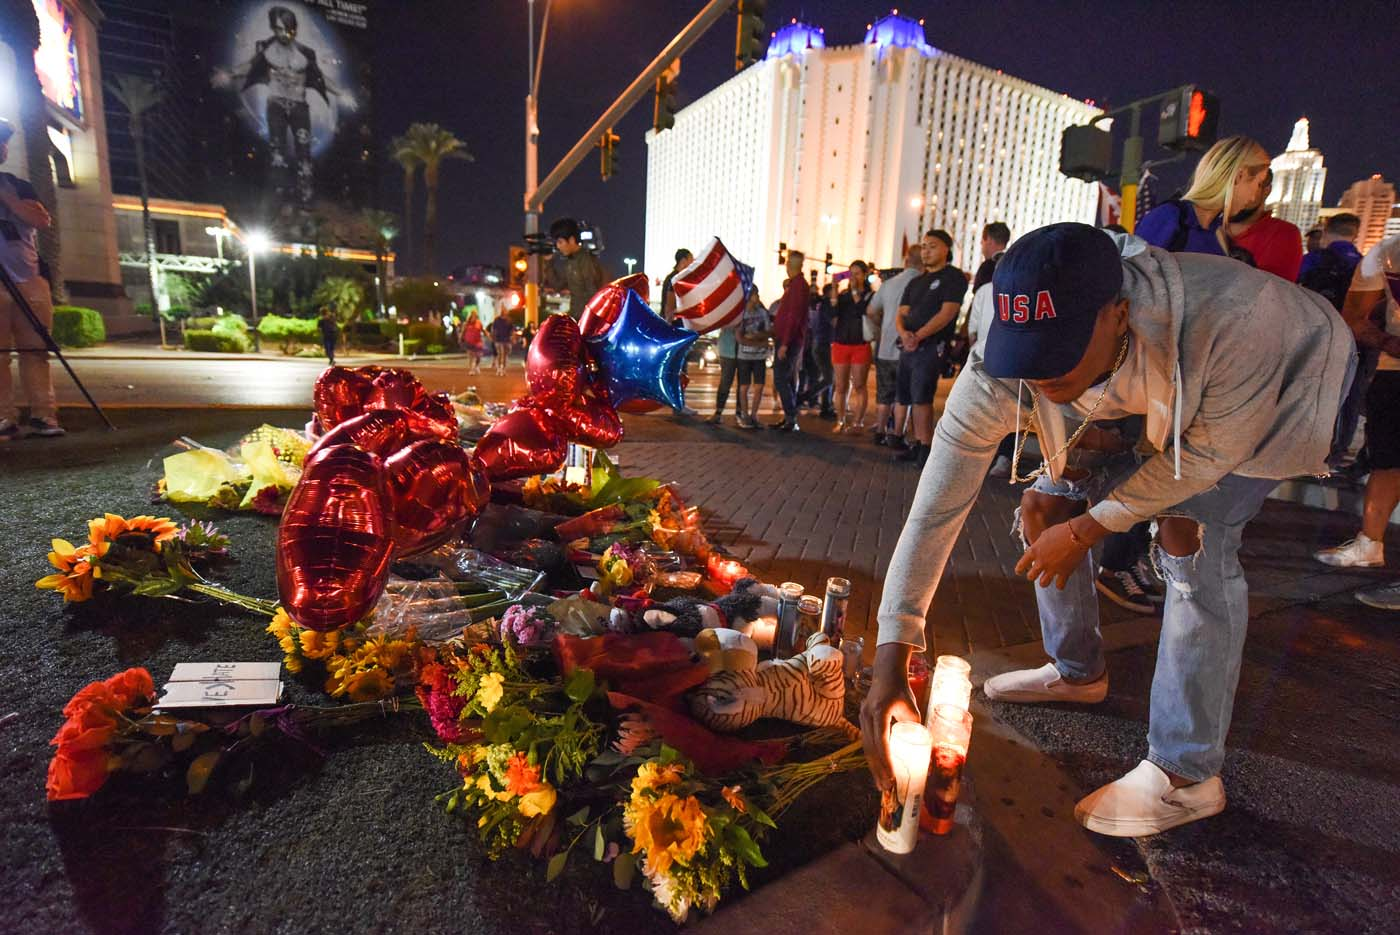 A man places a candle at a makeshift memorial near the Mandalay Hotel on the Las Vegas Strip, in Las Vegas, Nevada on October 3, 2017, after a gunman killed 58 people and wounded more than 500 others, before taking his own life, when he opened fire from a hotel on a country music festival. Police said the gunman, a 64-year-old local resident named as Stephen Paddock, had been killed after a SWAT team responded to reports of multiple gunfire from the 32nd floor of the Mandalay Bay, a hotel-casino next to the concert venue. / AFP PHOTO / Robyn Beck